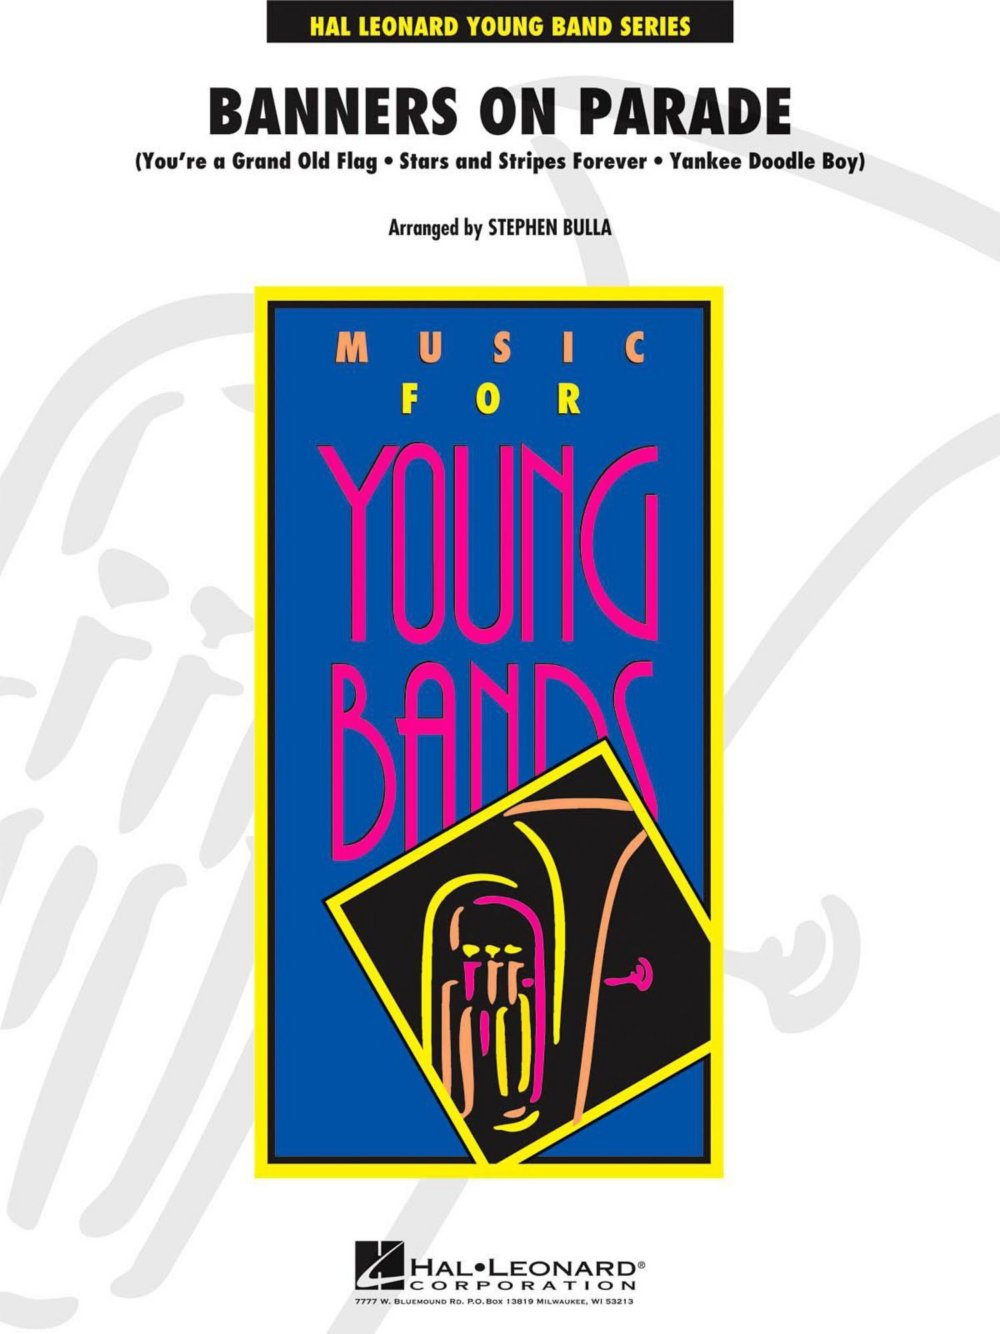 Parade clipart concert band. Hal leonard banners on